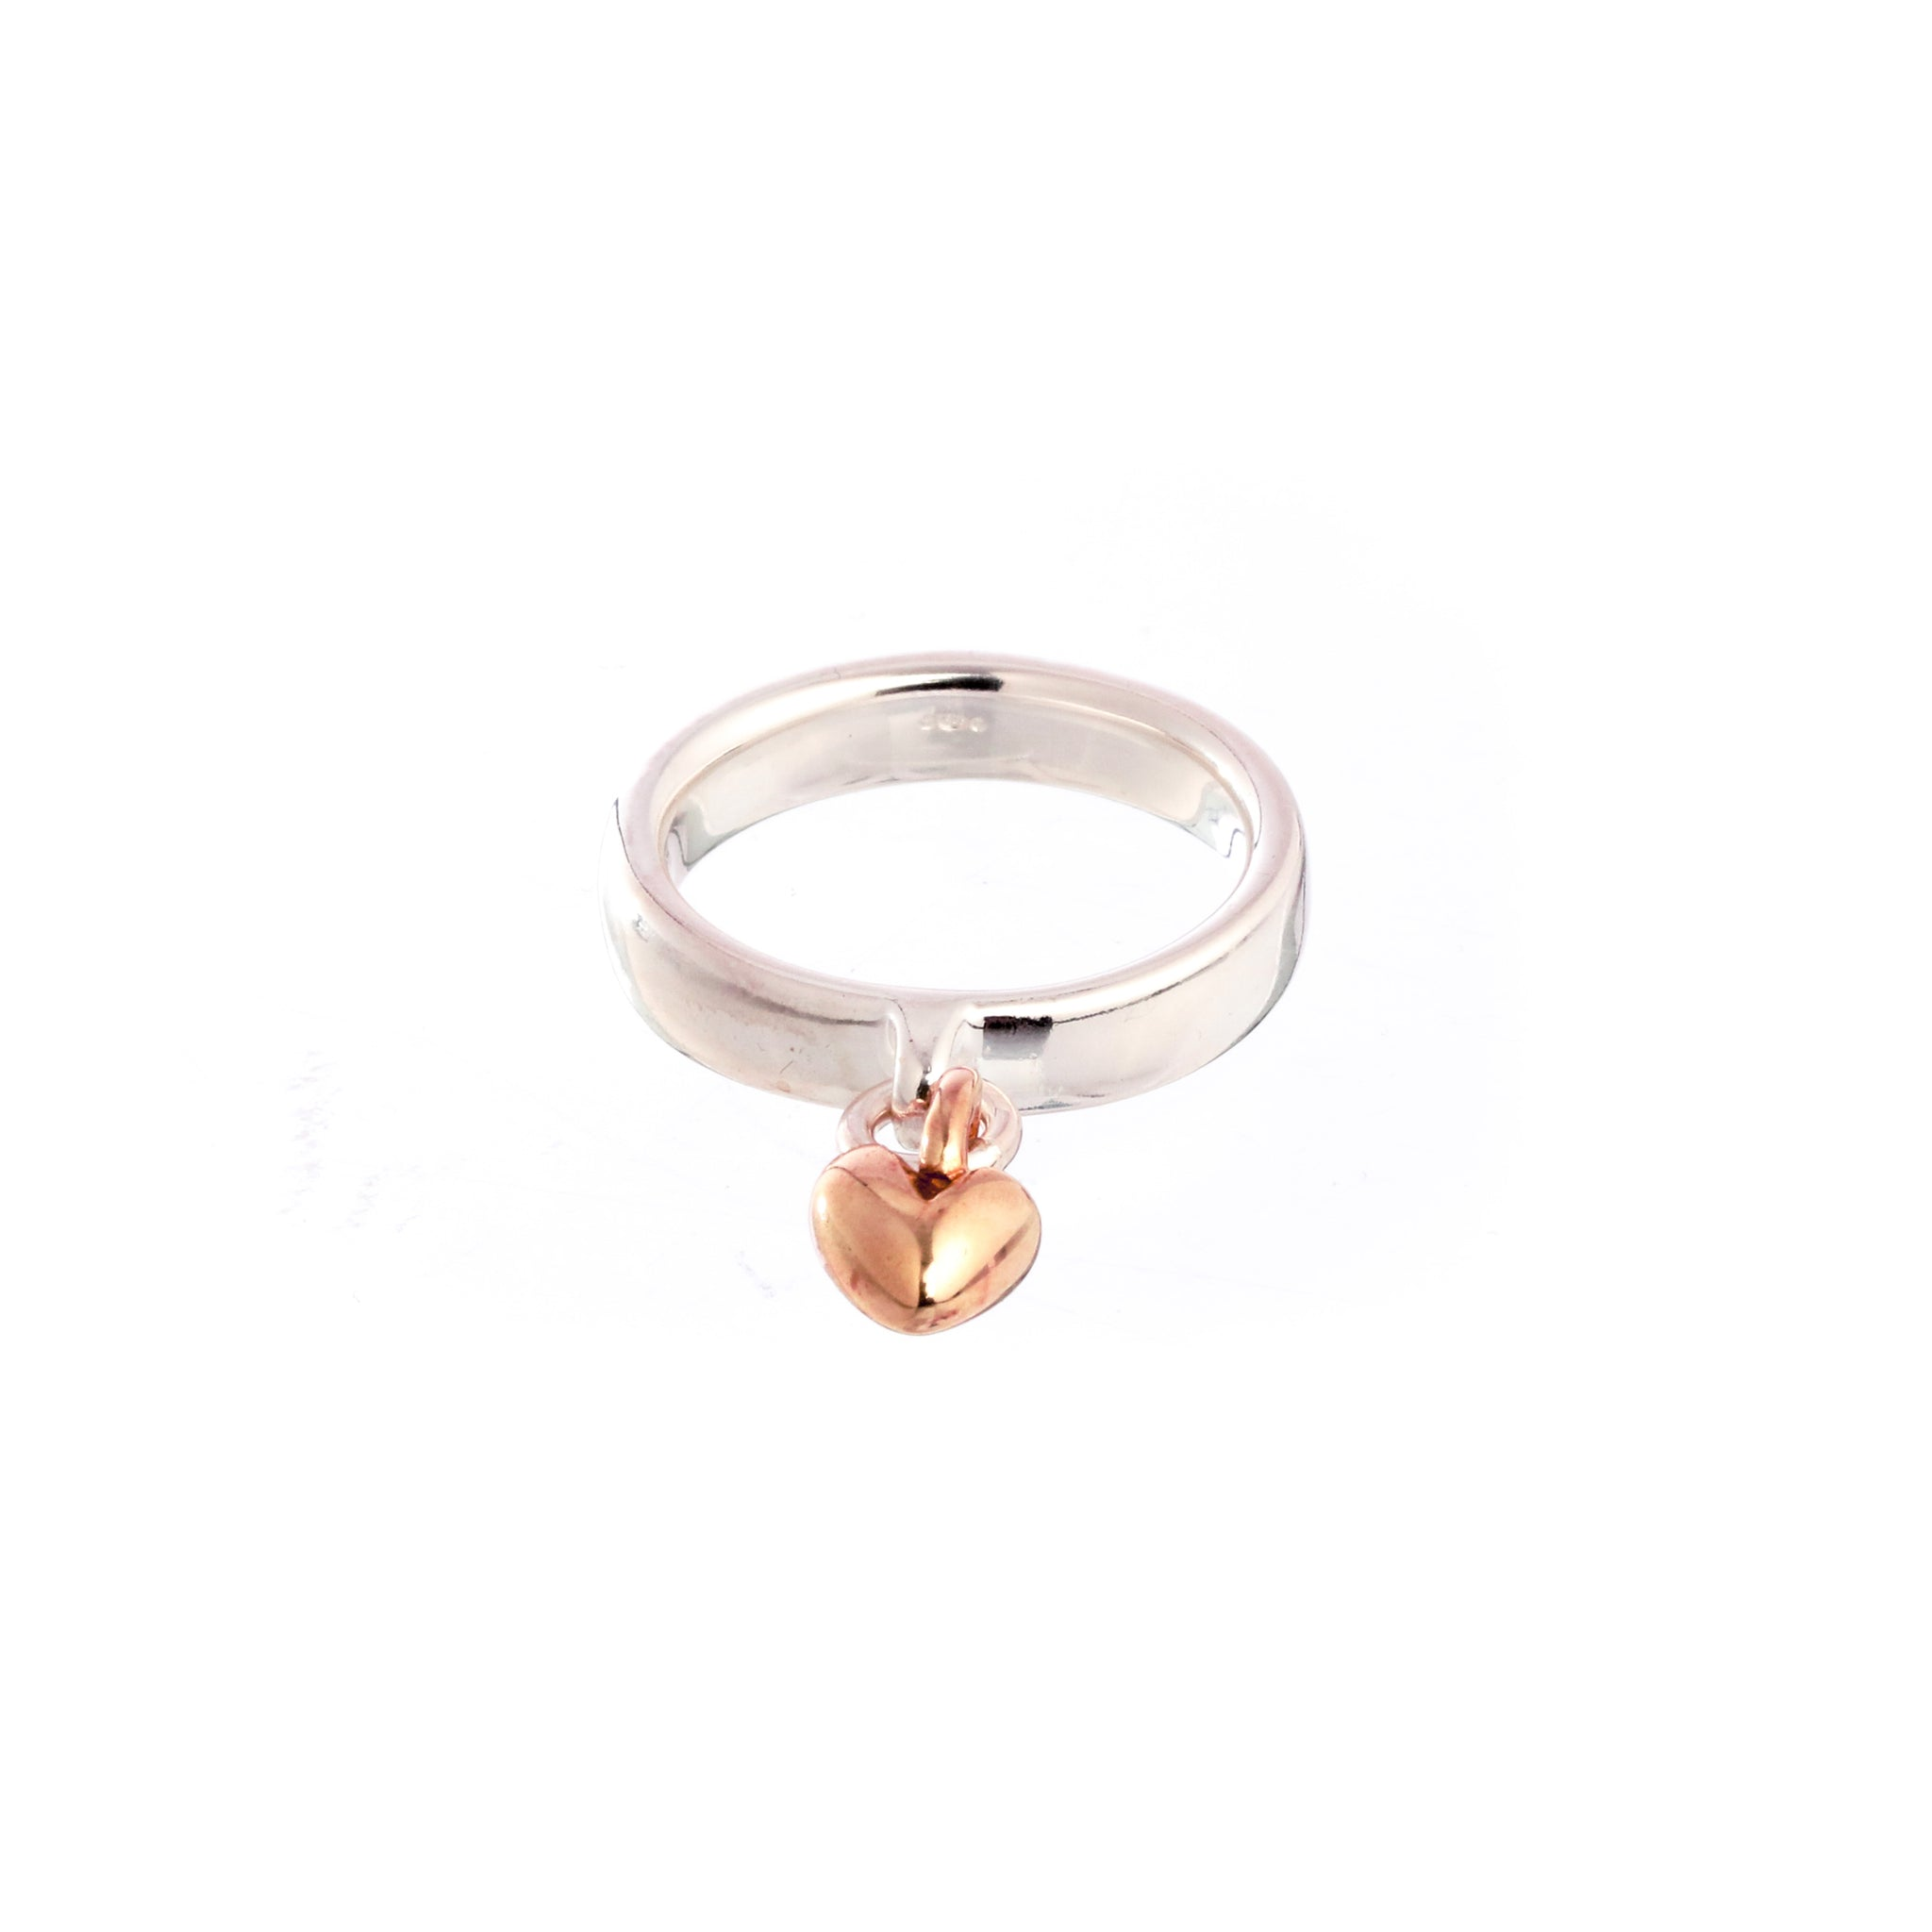 Sweetheart Silver & Rose Gold Charm Ring